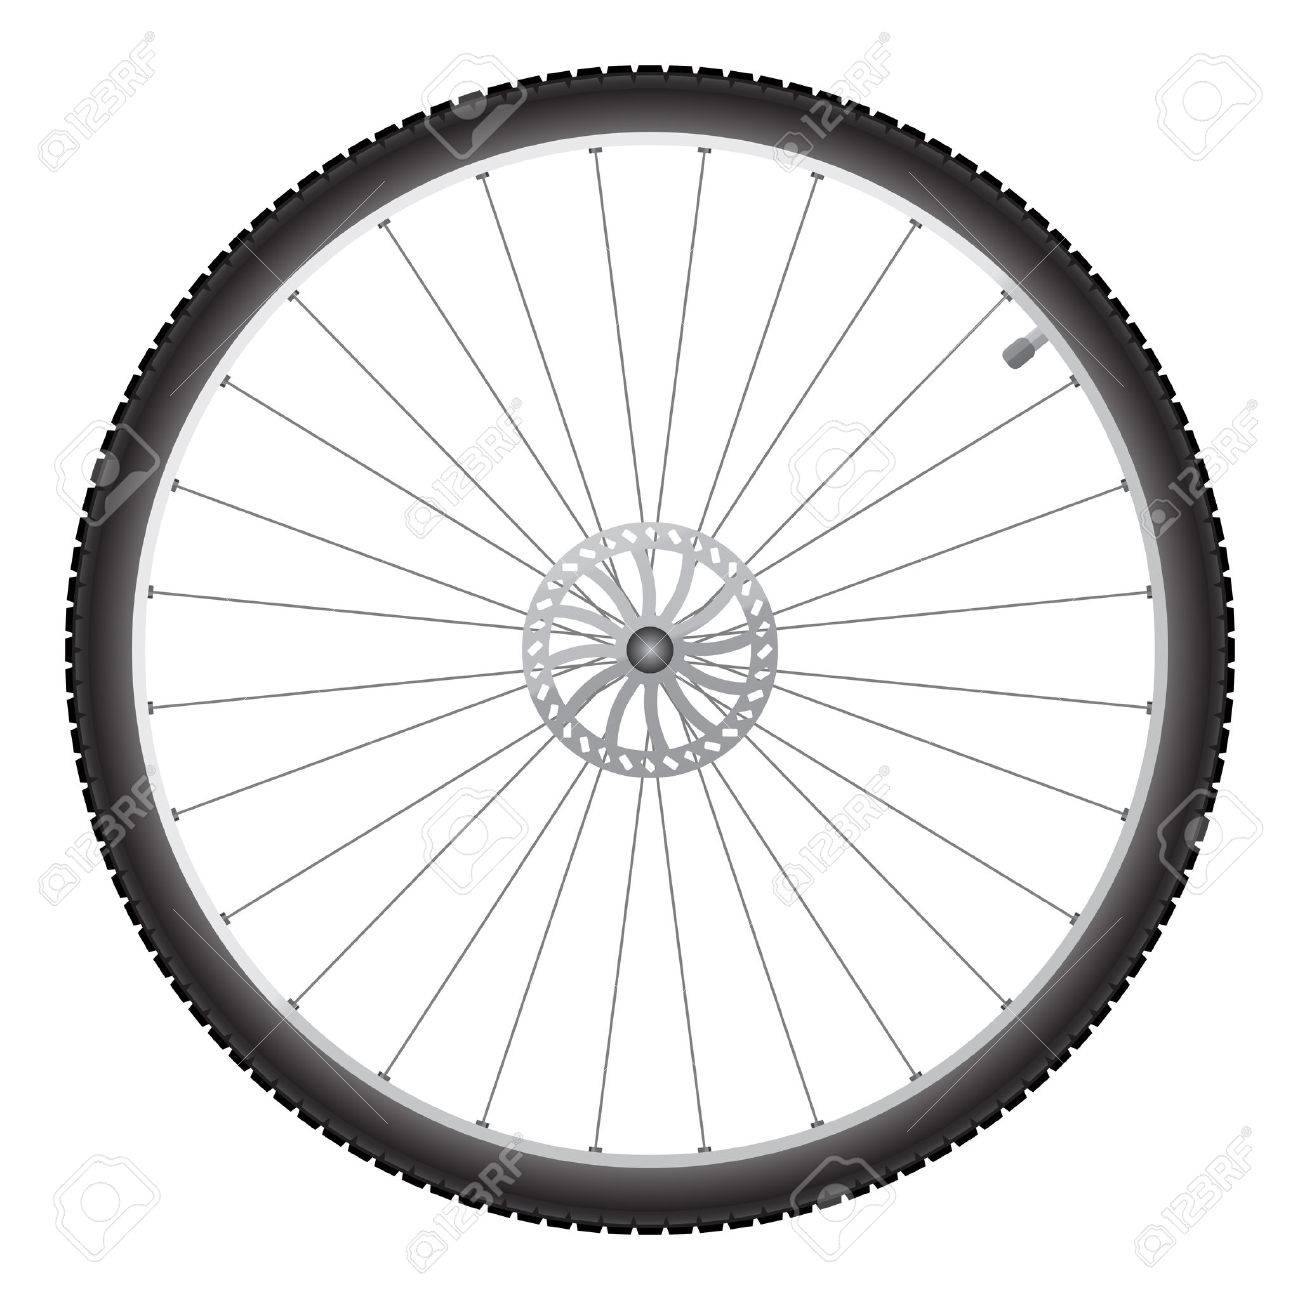 2396 Bicycle free clipart.